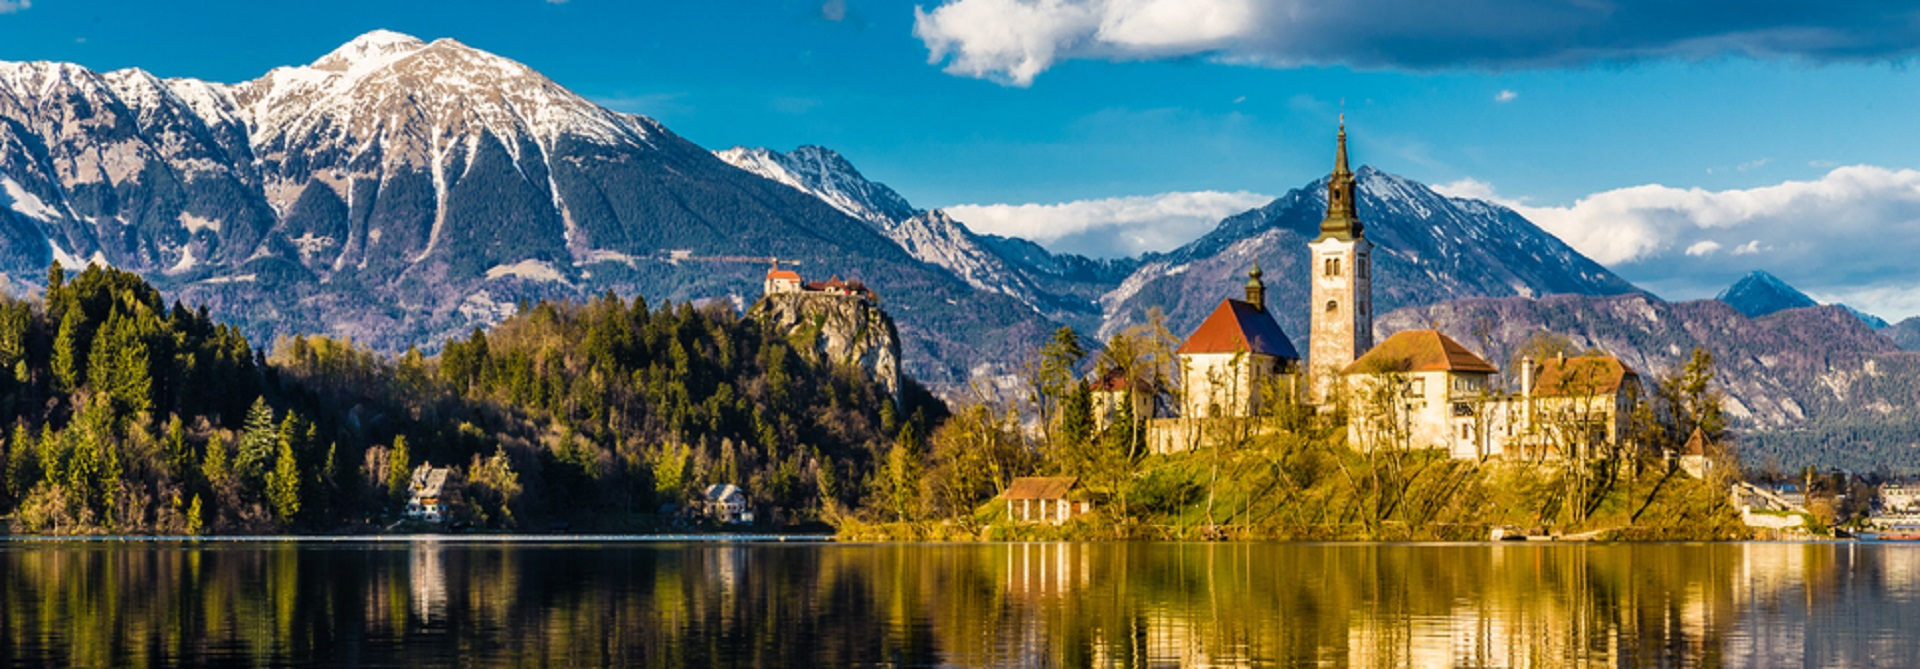 Best of Slovenia and Croatia Tour